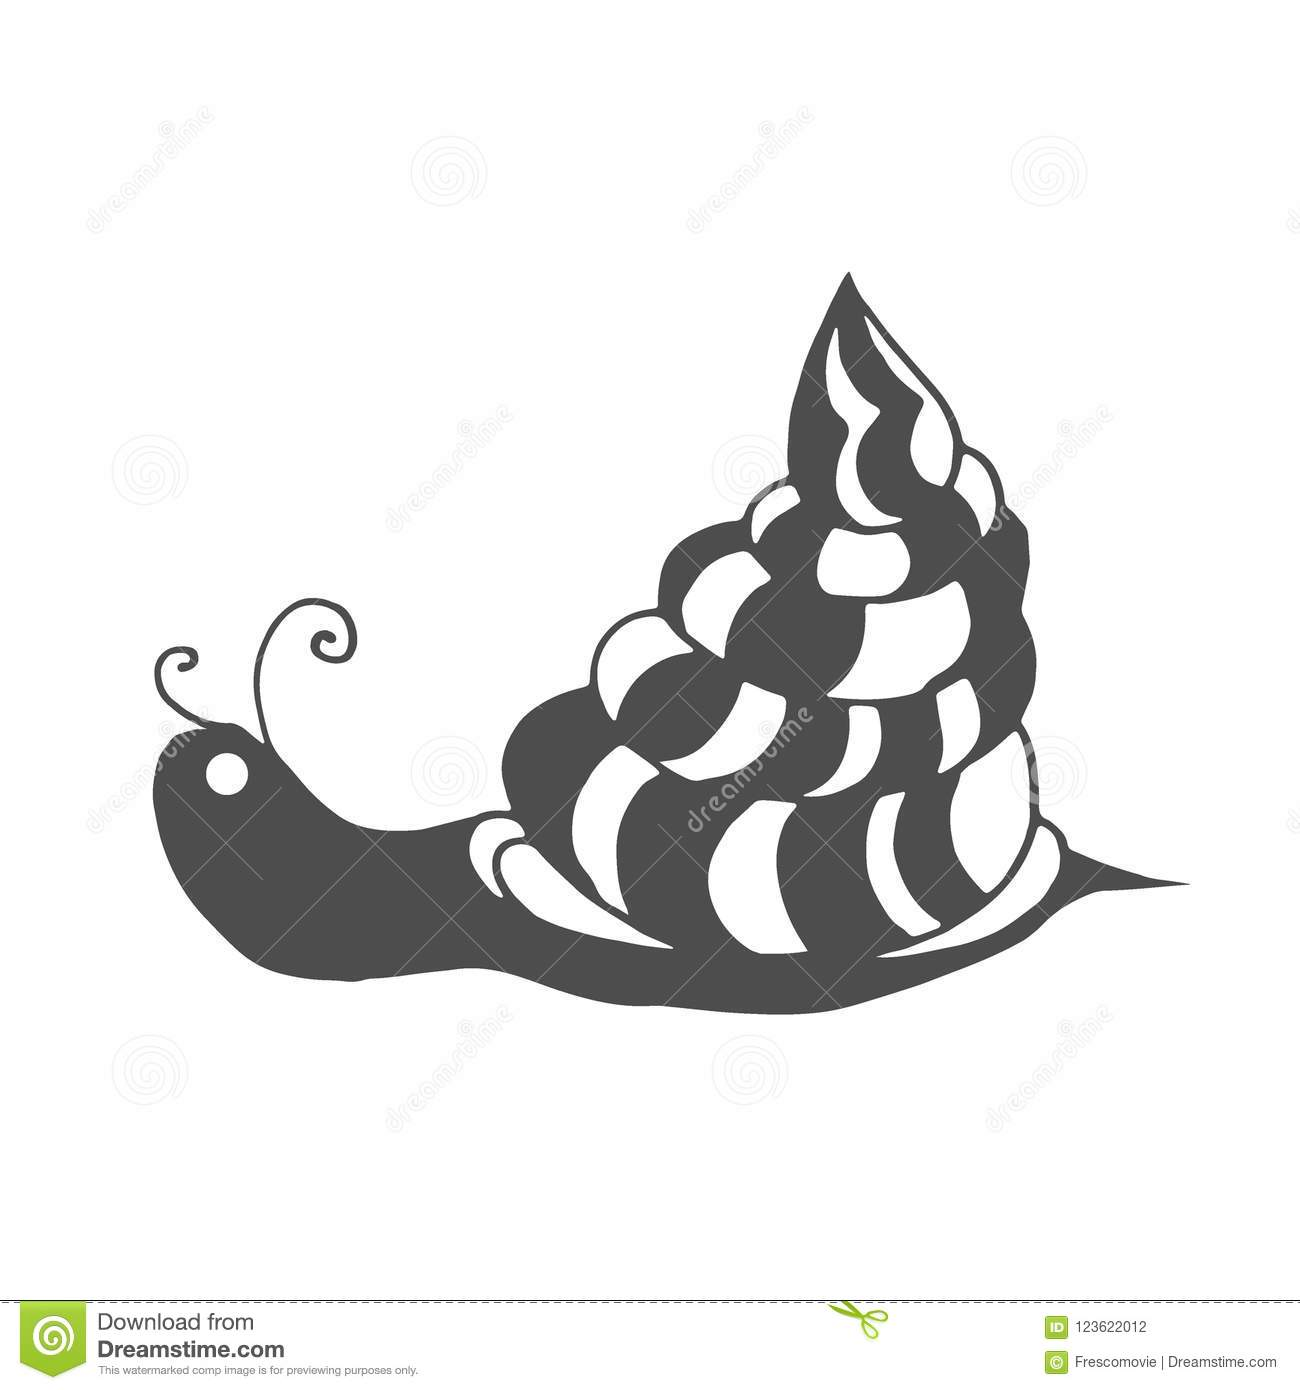 Snail Coloring Page Stock Vector Illustration Of Drawing 123622012